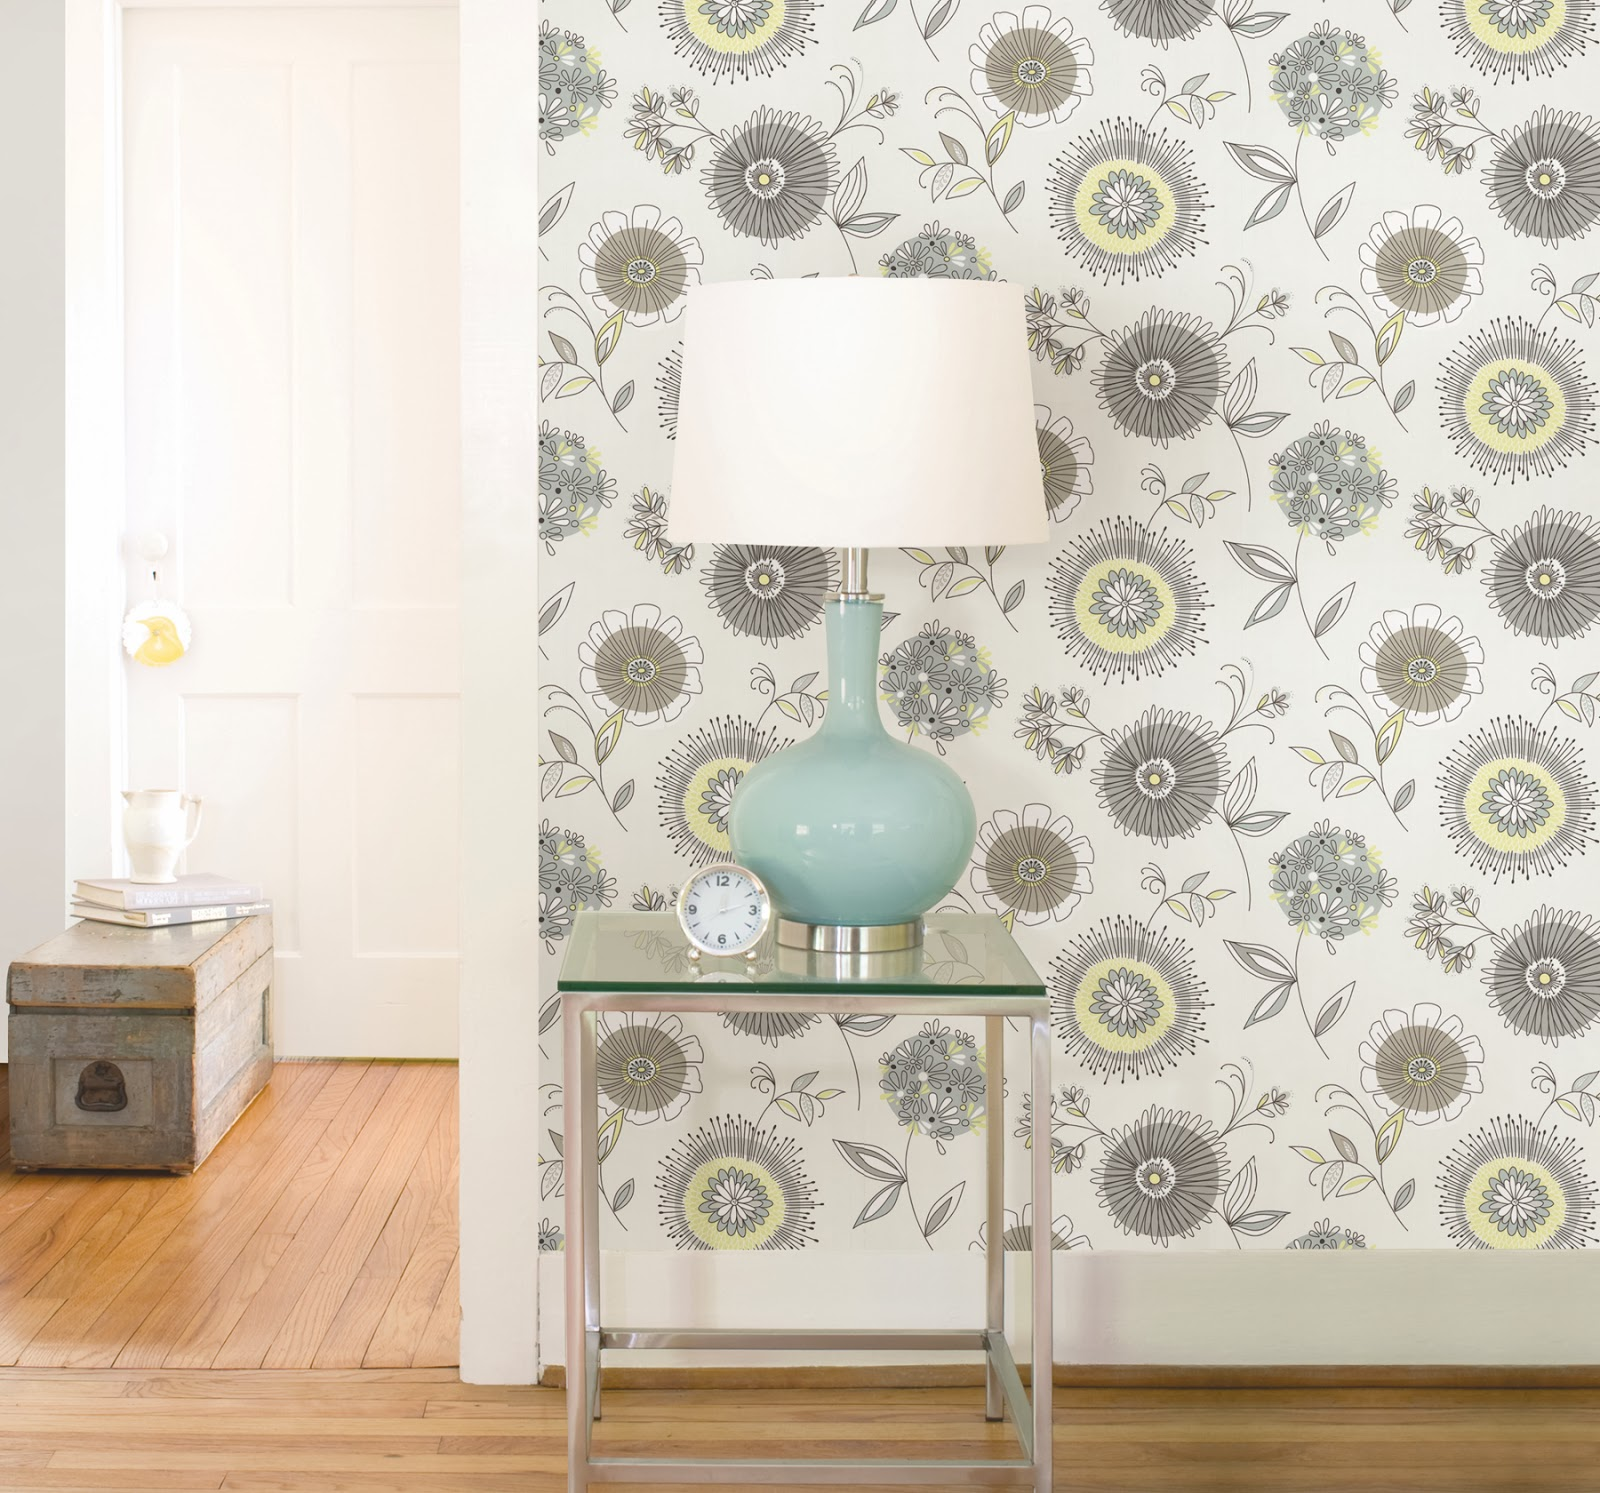 https://www.wallcoveringsforless.com/shoppingcart/prodlist1.CFM?page=_prod_detail.cfm&product_id=43328&startrow=1&search=Simple%20Space%202&pagereturn=_search.cfm